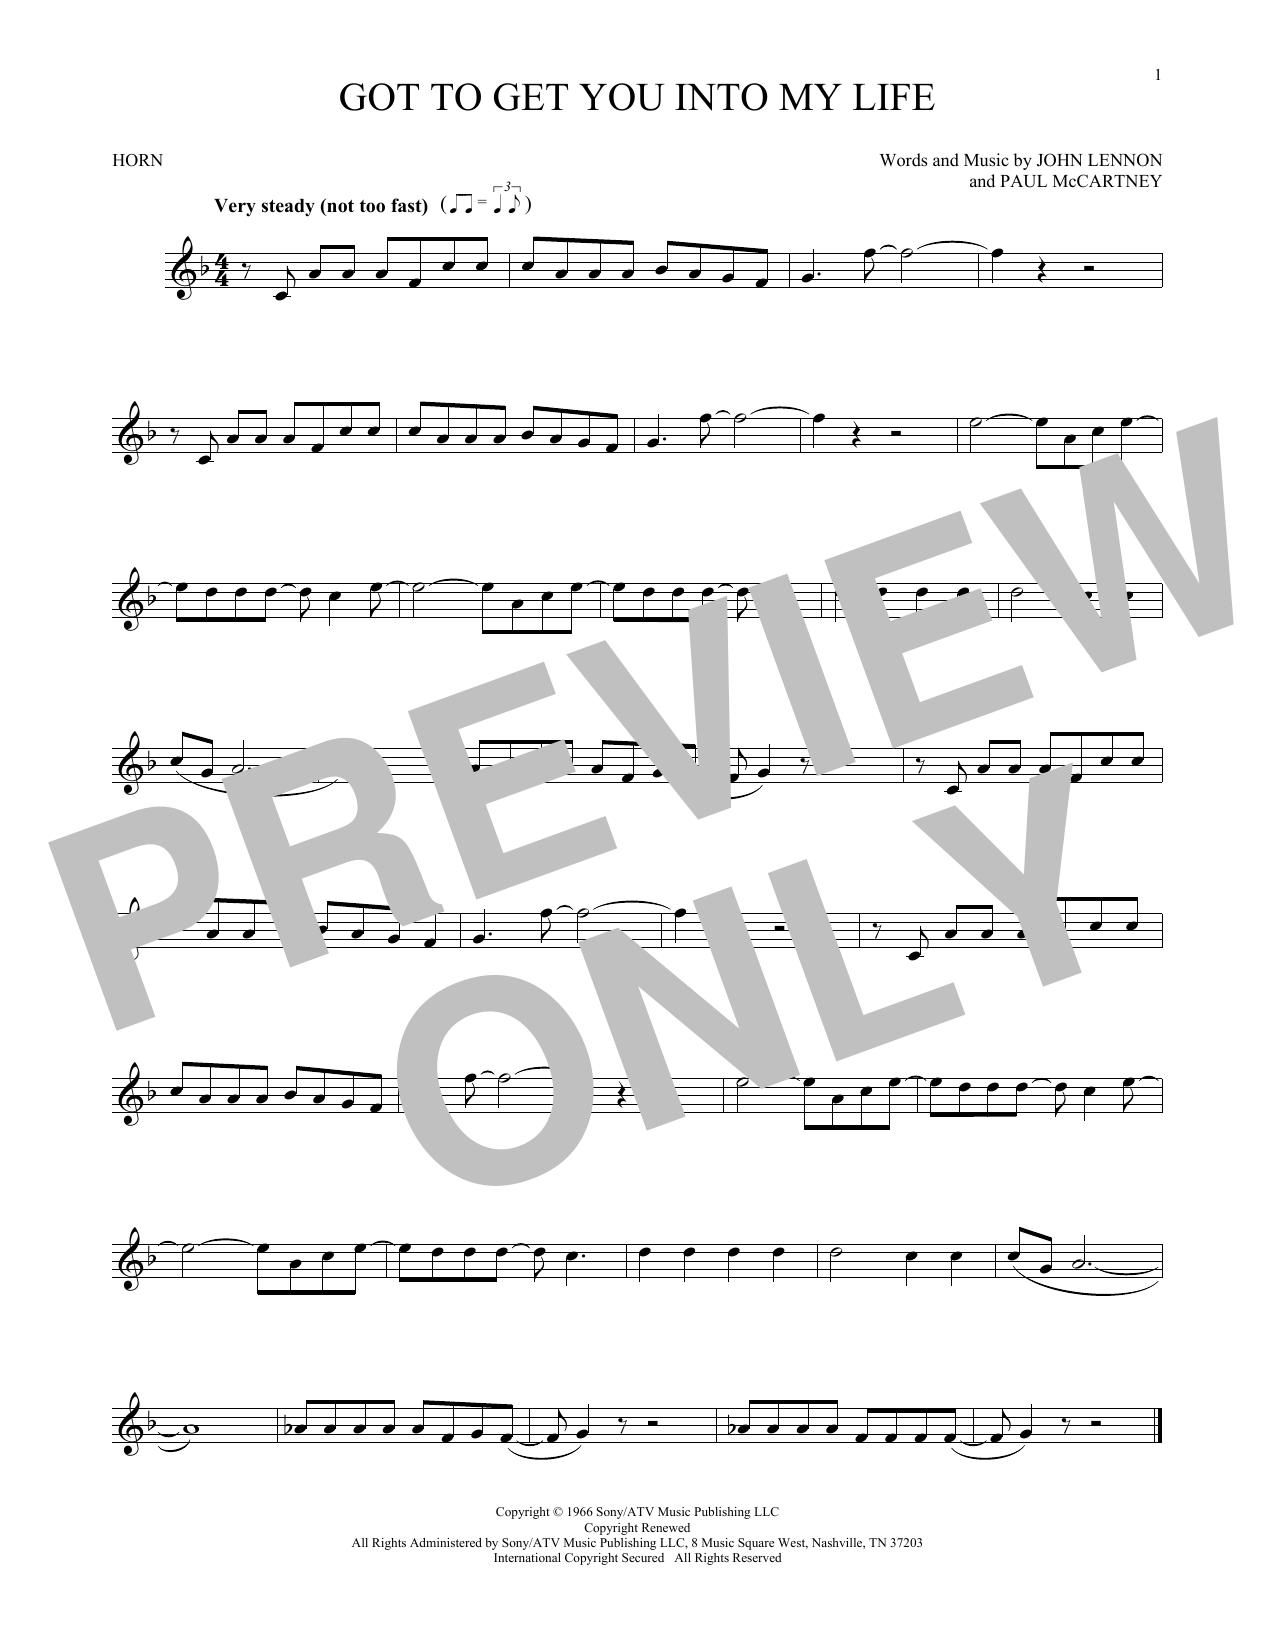 Got To Get You Into My Life (French Horn Solo)